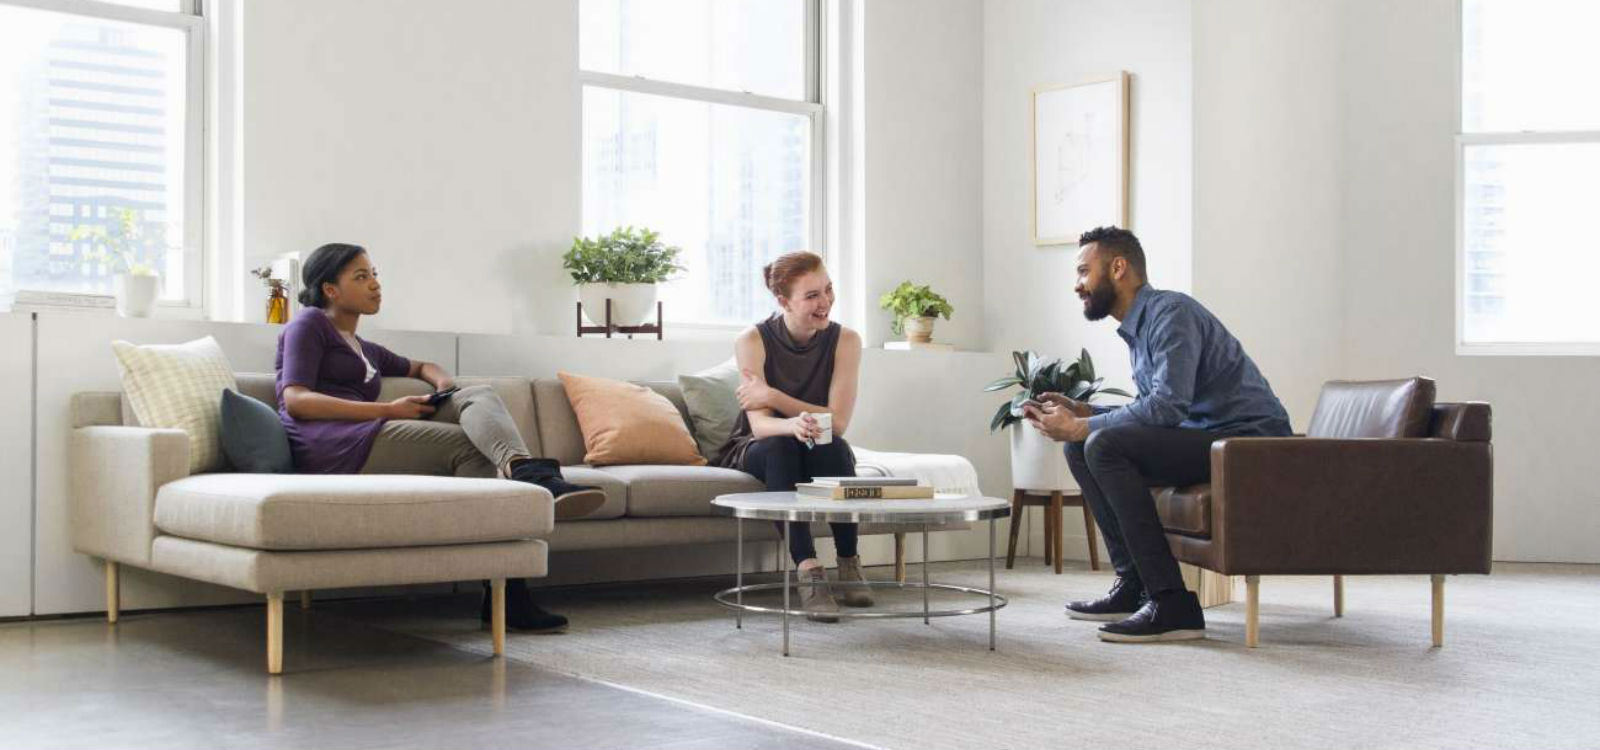 The Latest Commercial Office Furniture Trend: Human-Centered Design